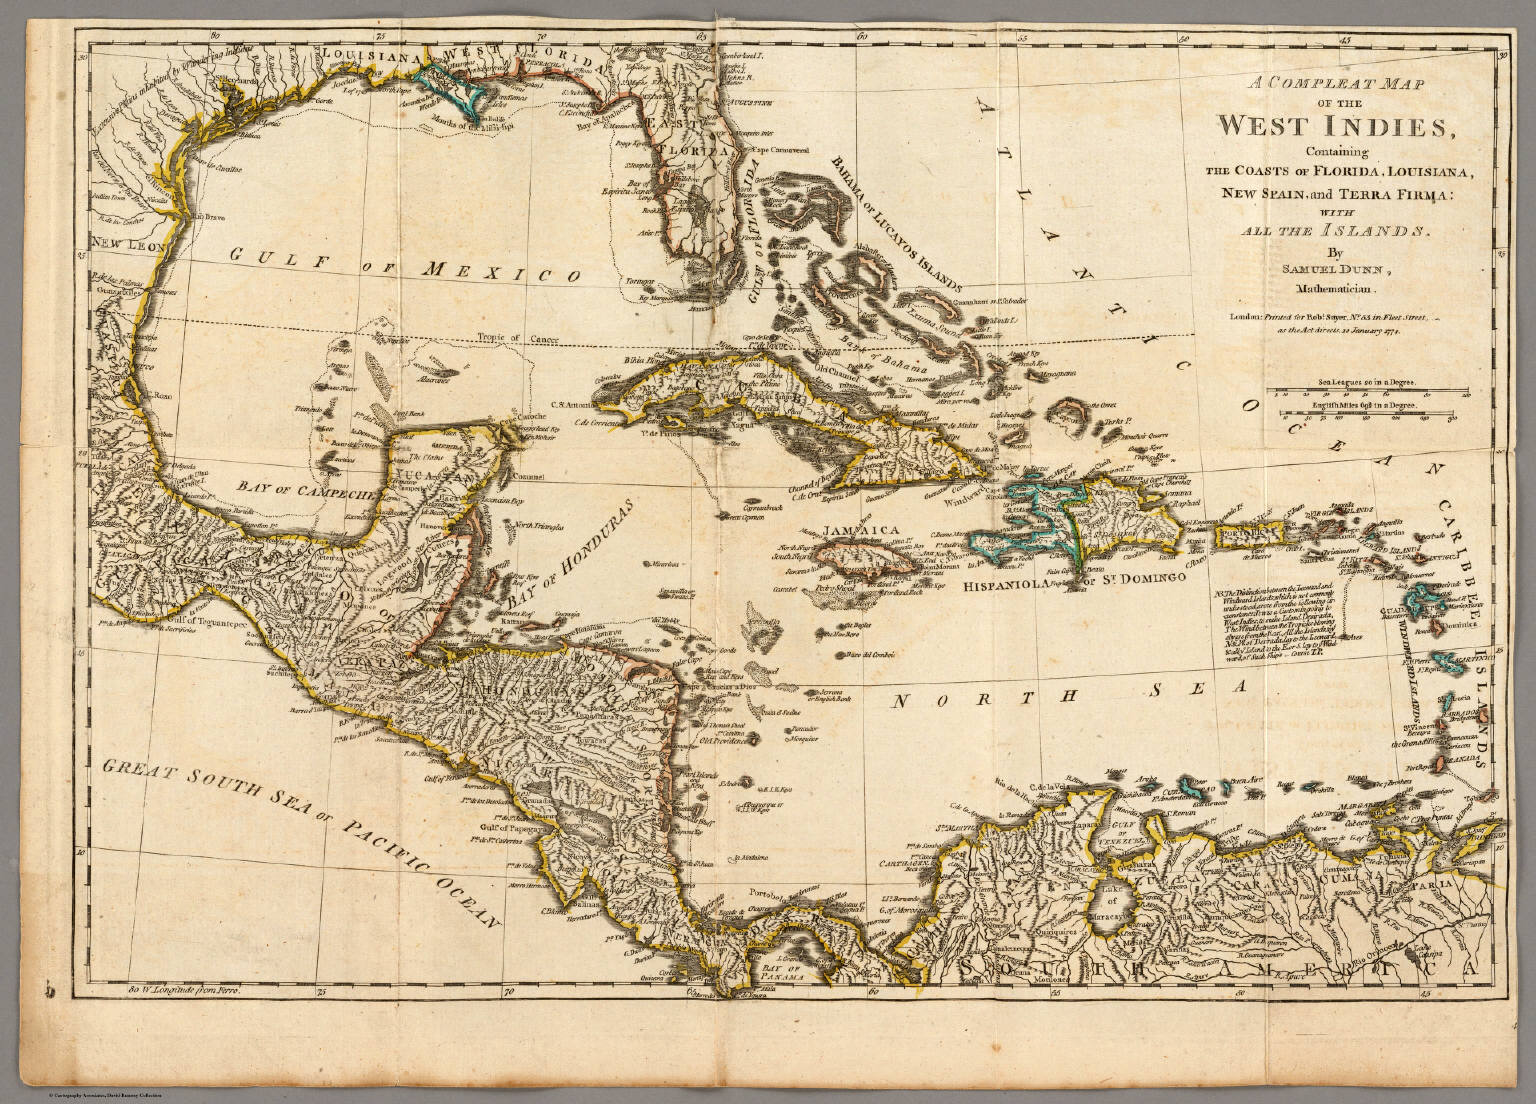 A compleat map of the west indies david rumsey historical map a compleat map of the west indies gumiabroncs Image collections